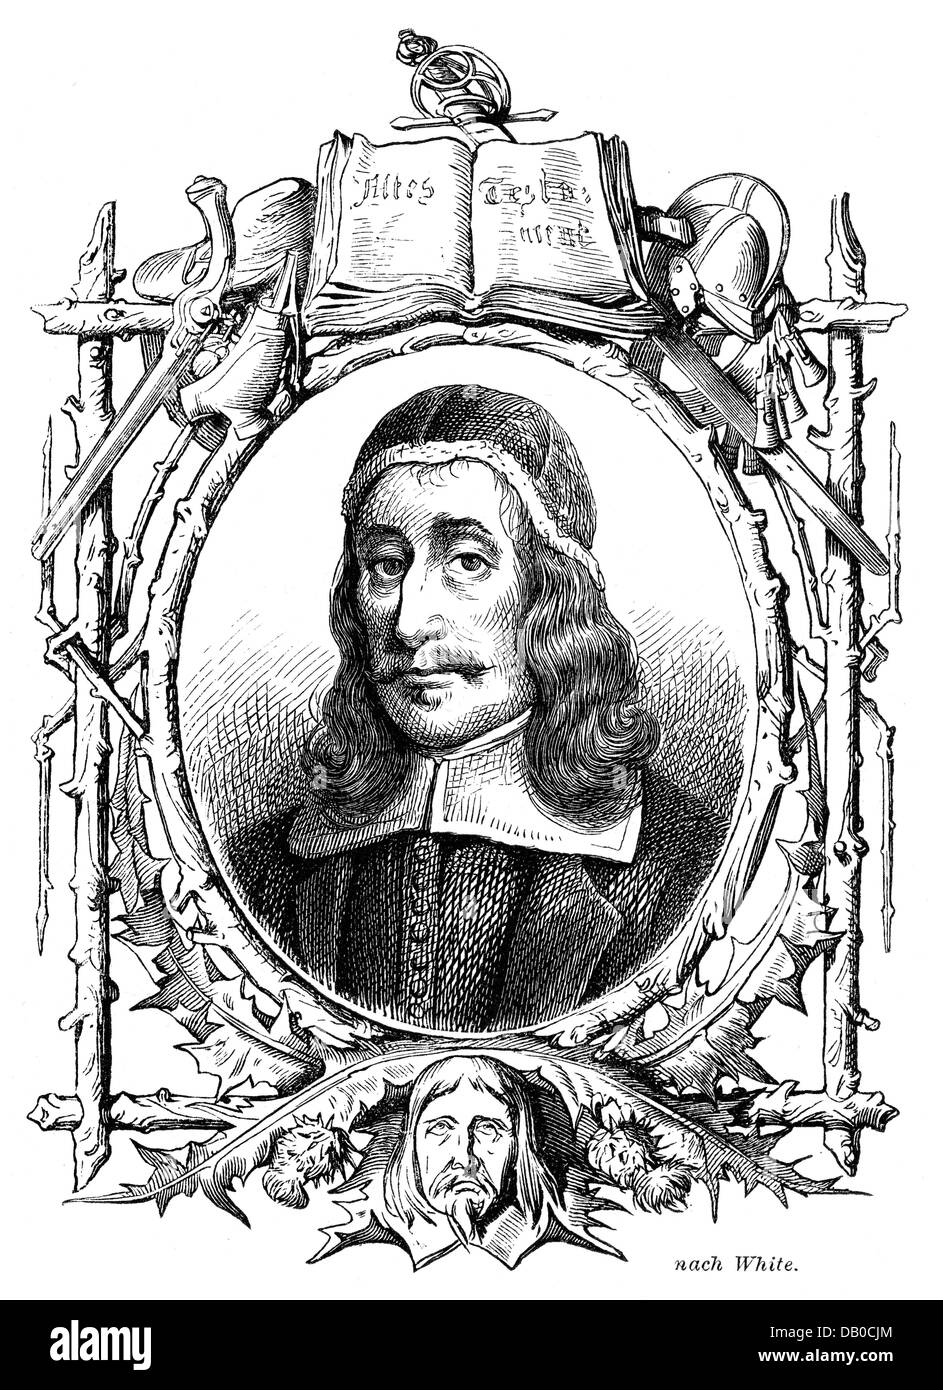 Baxter, Richard, 12.11.1615 - 8.12.1691, English clergyman, portrait, wood engraving, 19th century, Additional-Rights - Stock Image